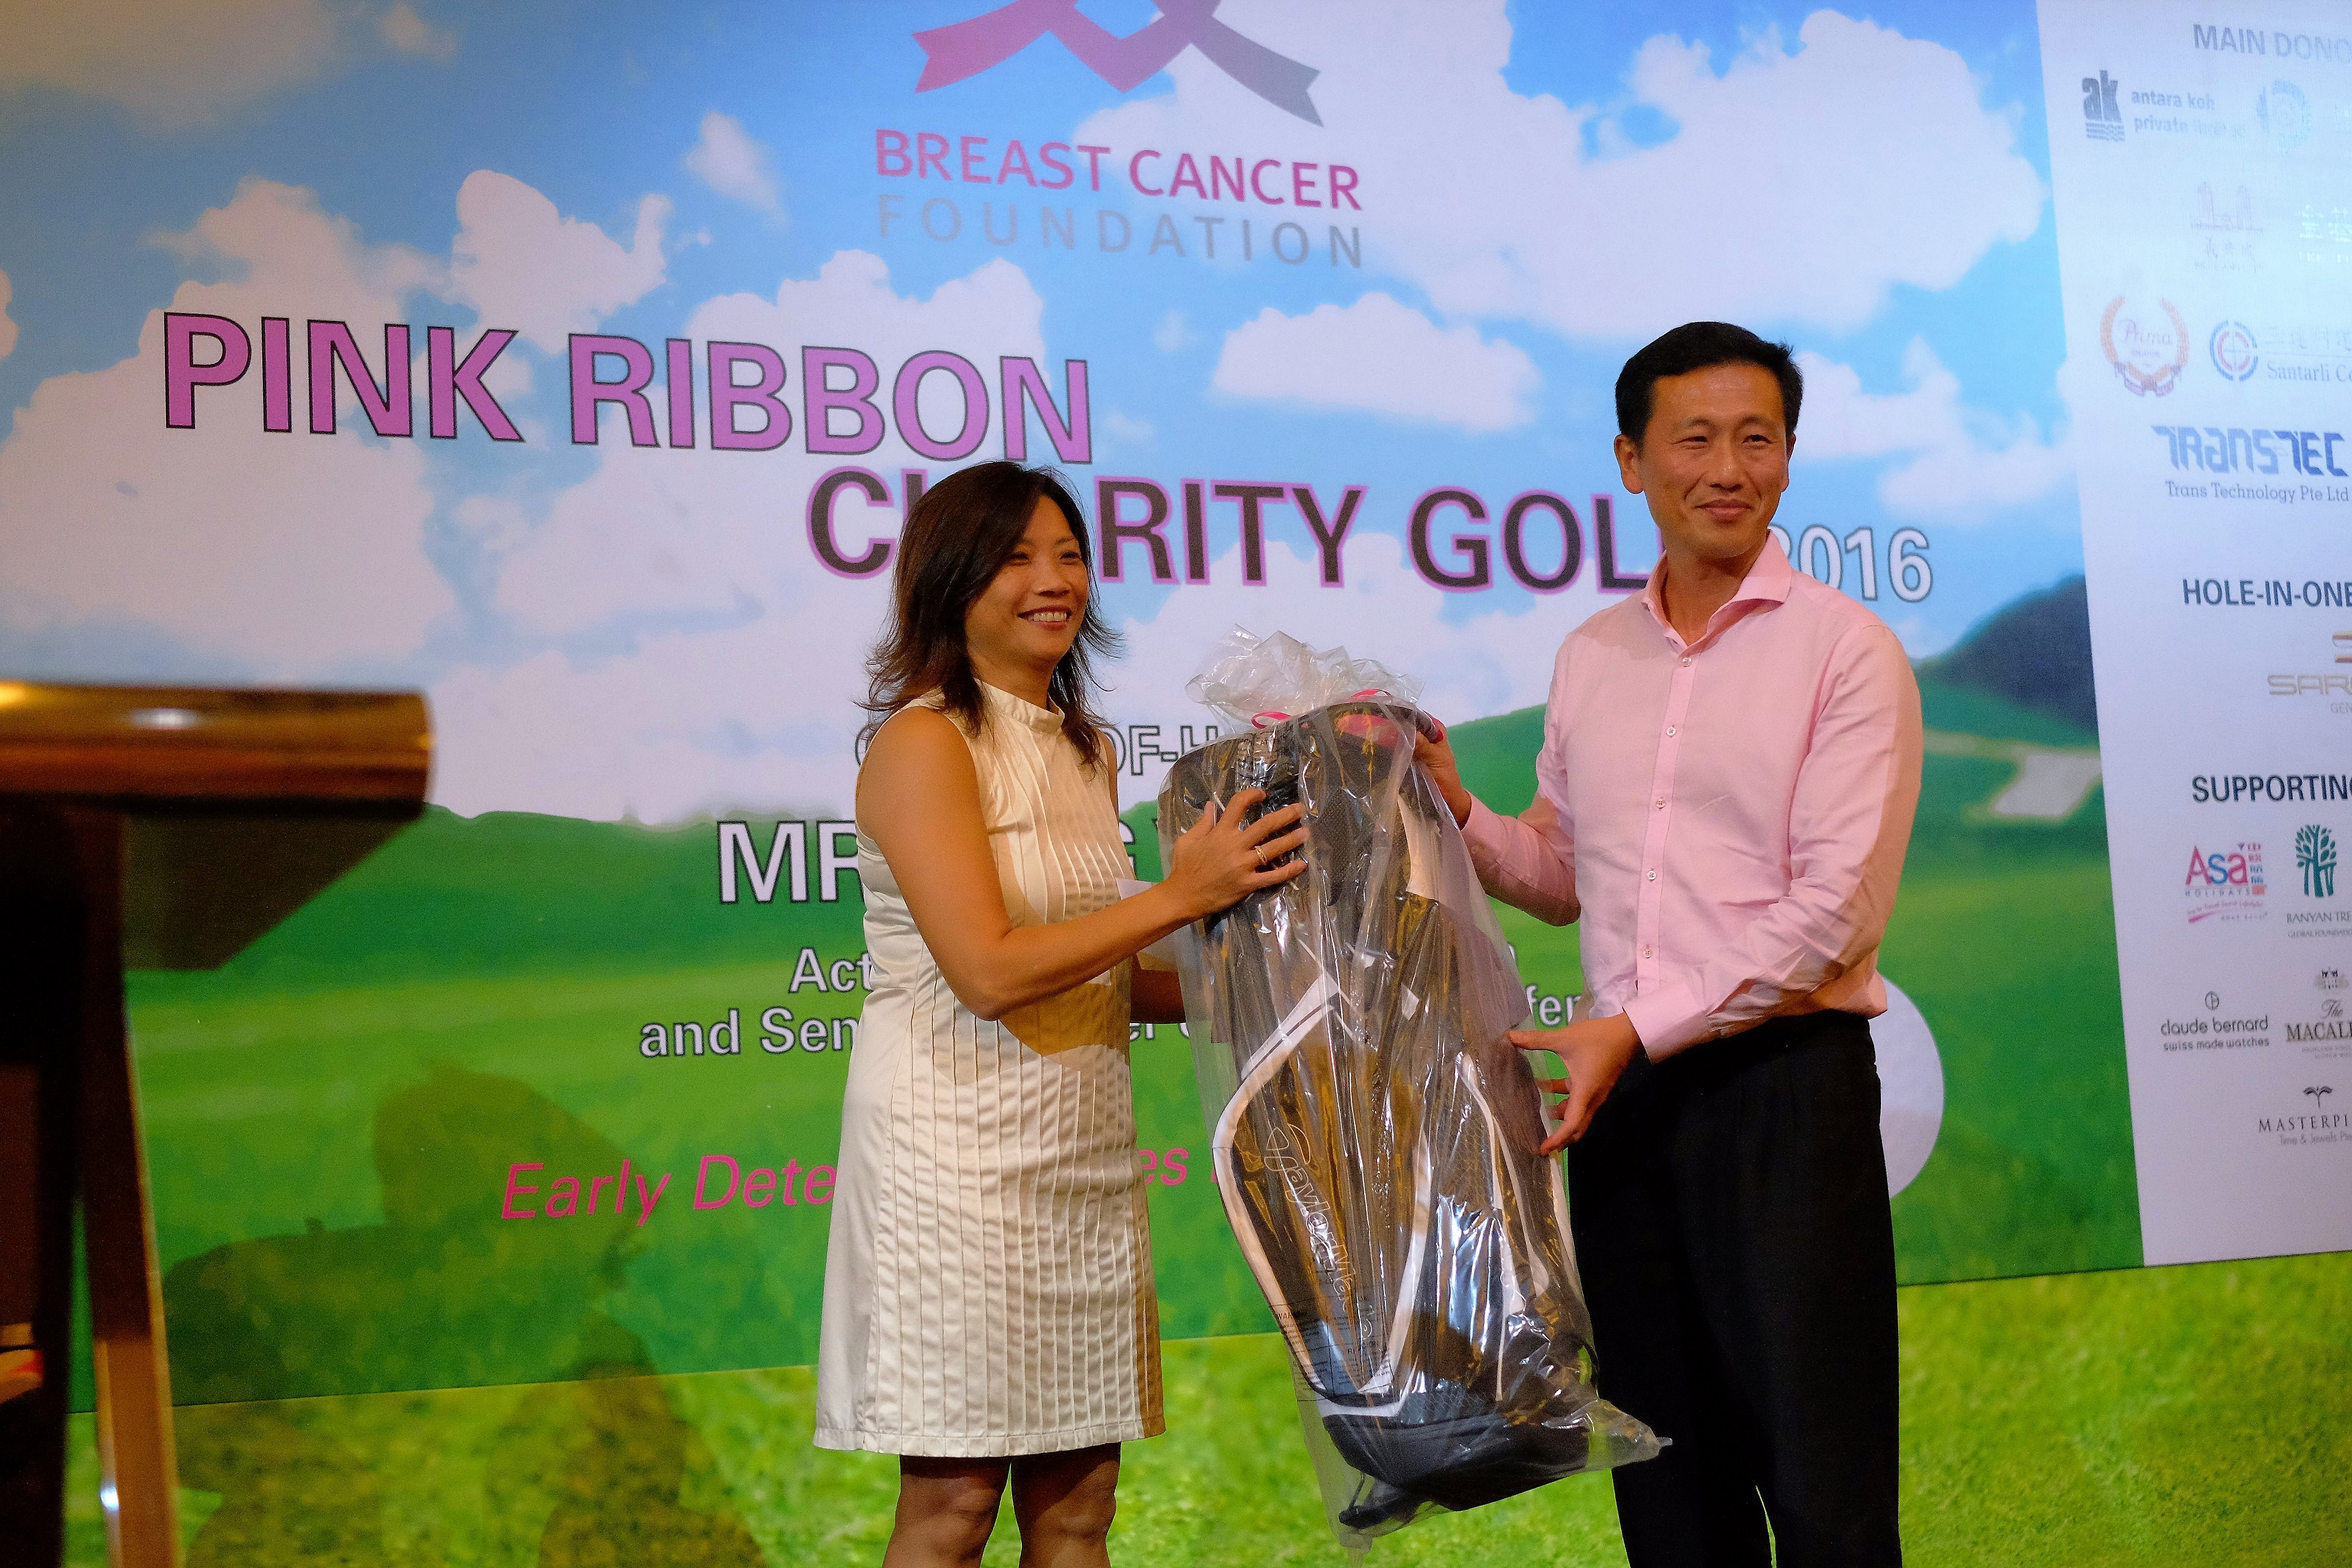 Pink Ribbon Charity Golf 2016